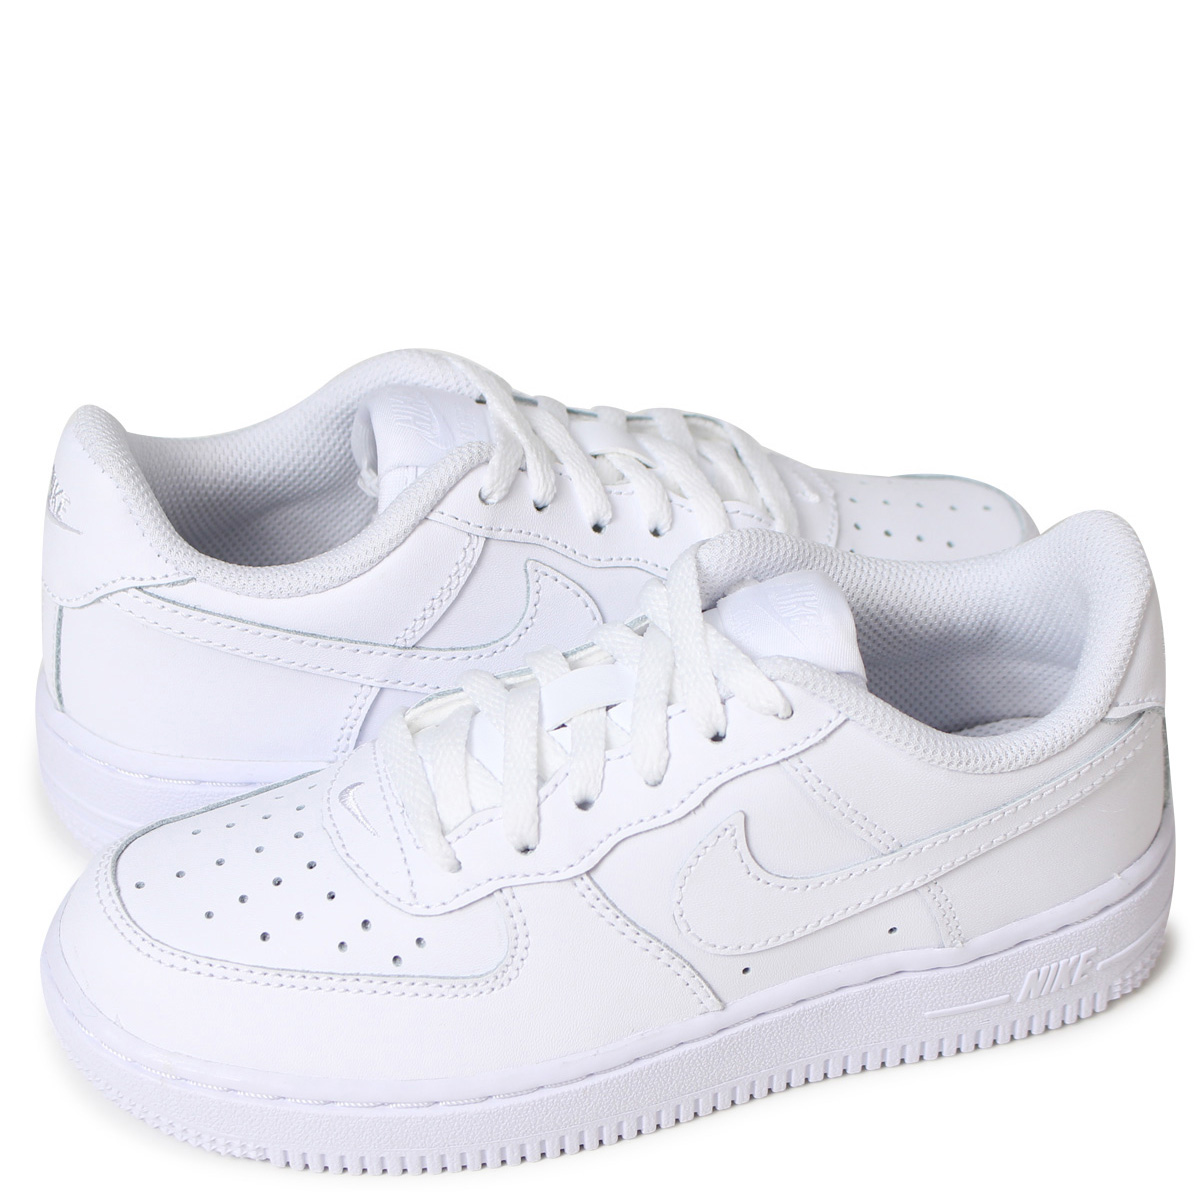 Nike NIKE air force 1 sneakers kids AIR FORCE 1 PS white white 314,193 117 [196]